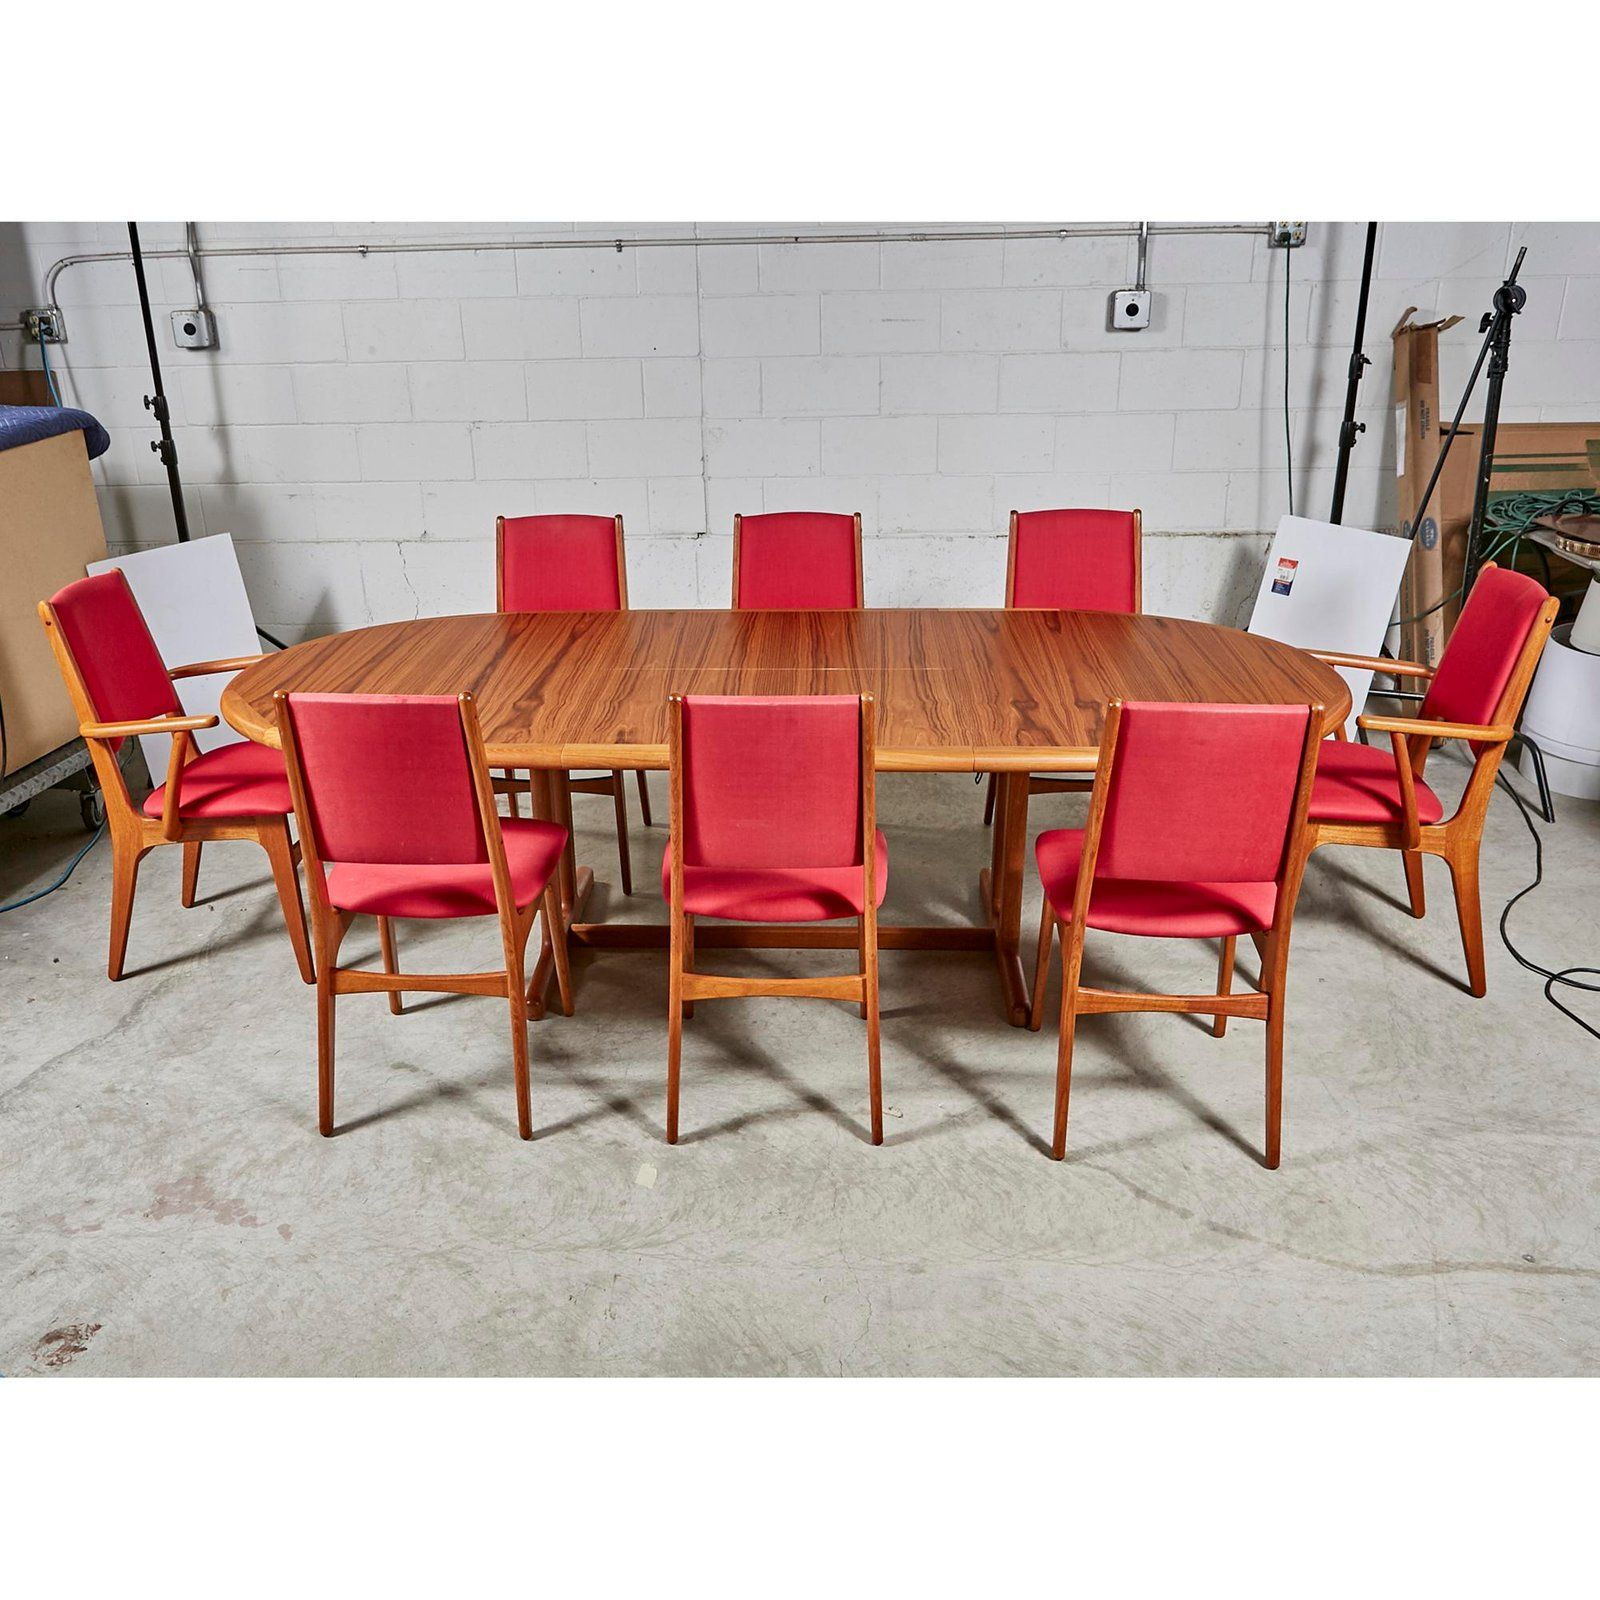 1970s Teak Dining Table Chairs Home It S Where The 3 Is Teak